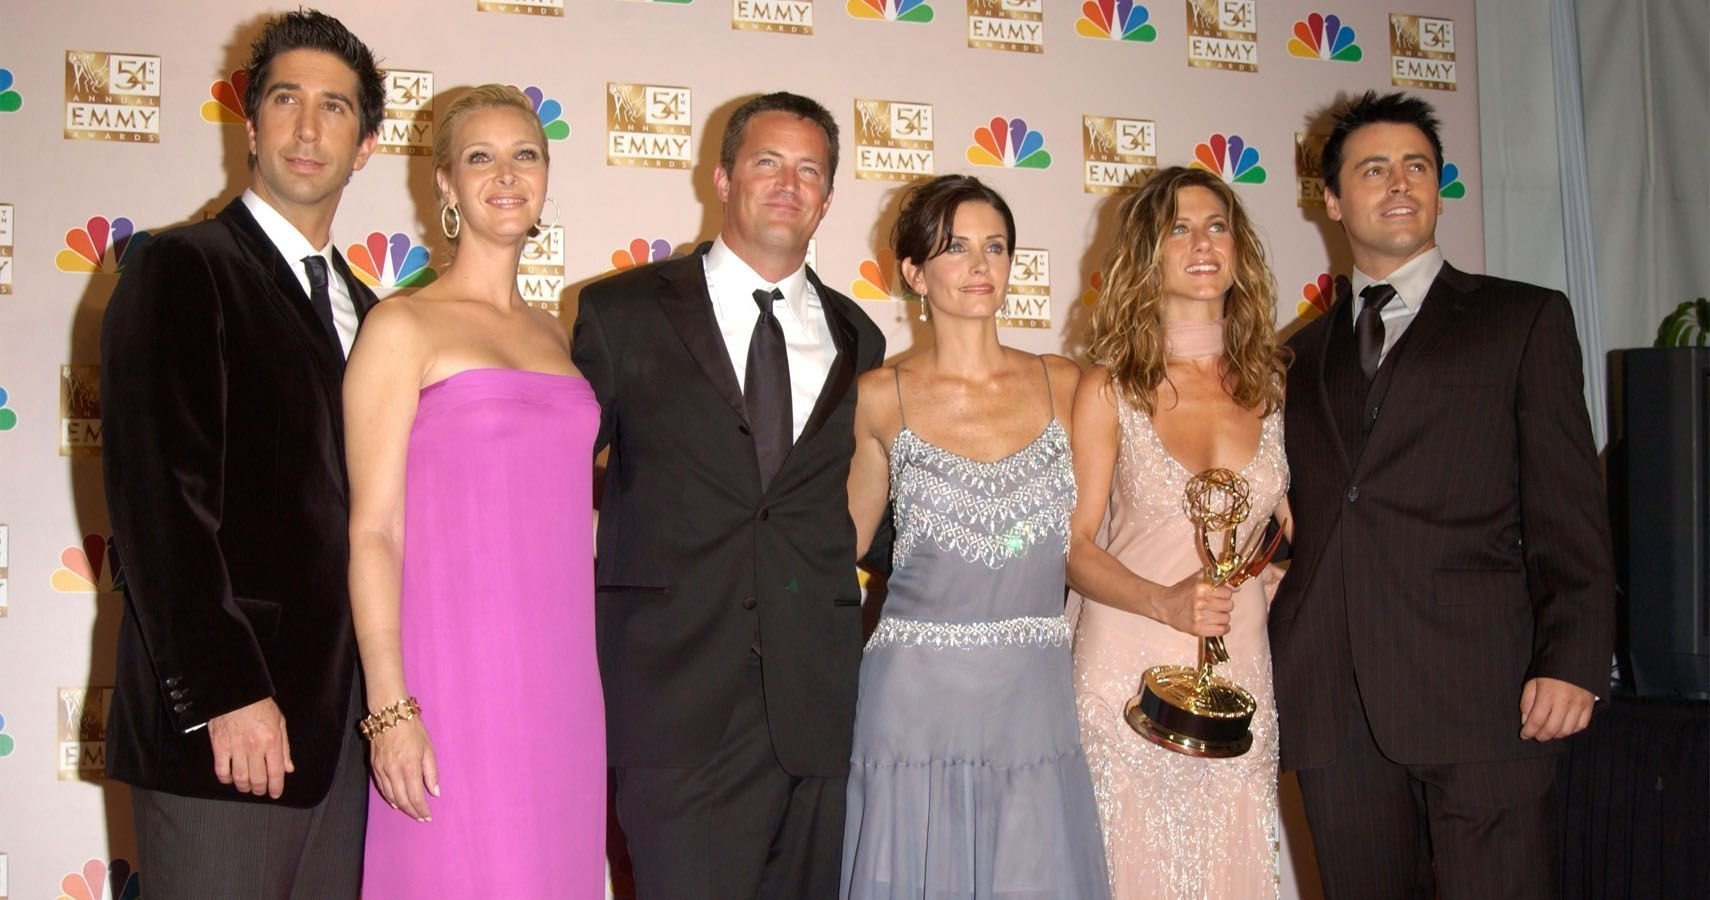 The Friends Reunion: How Much The Cast Will Be Paid?